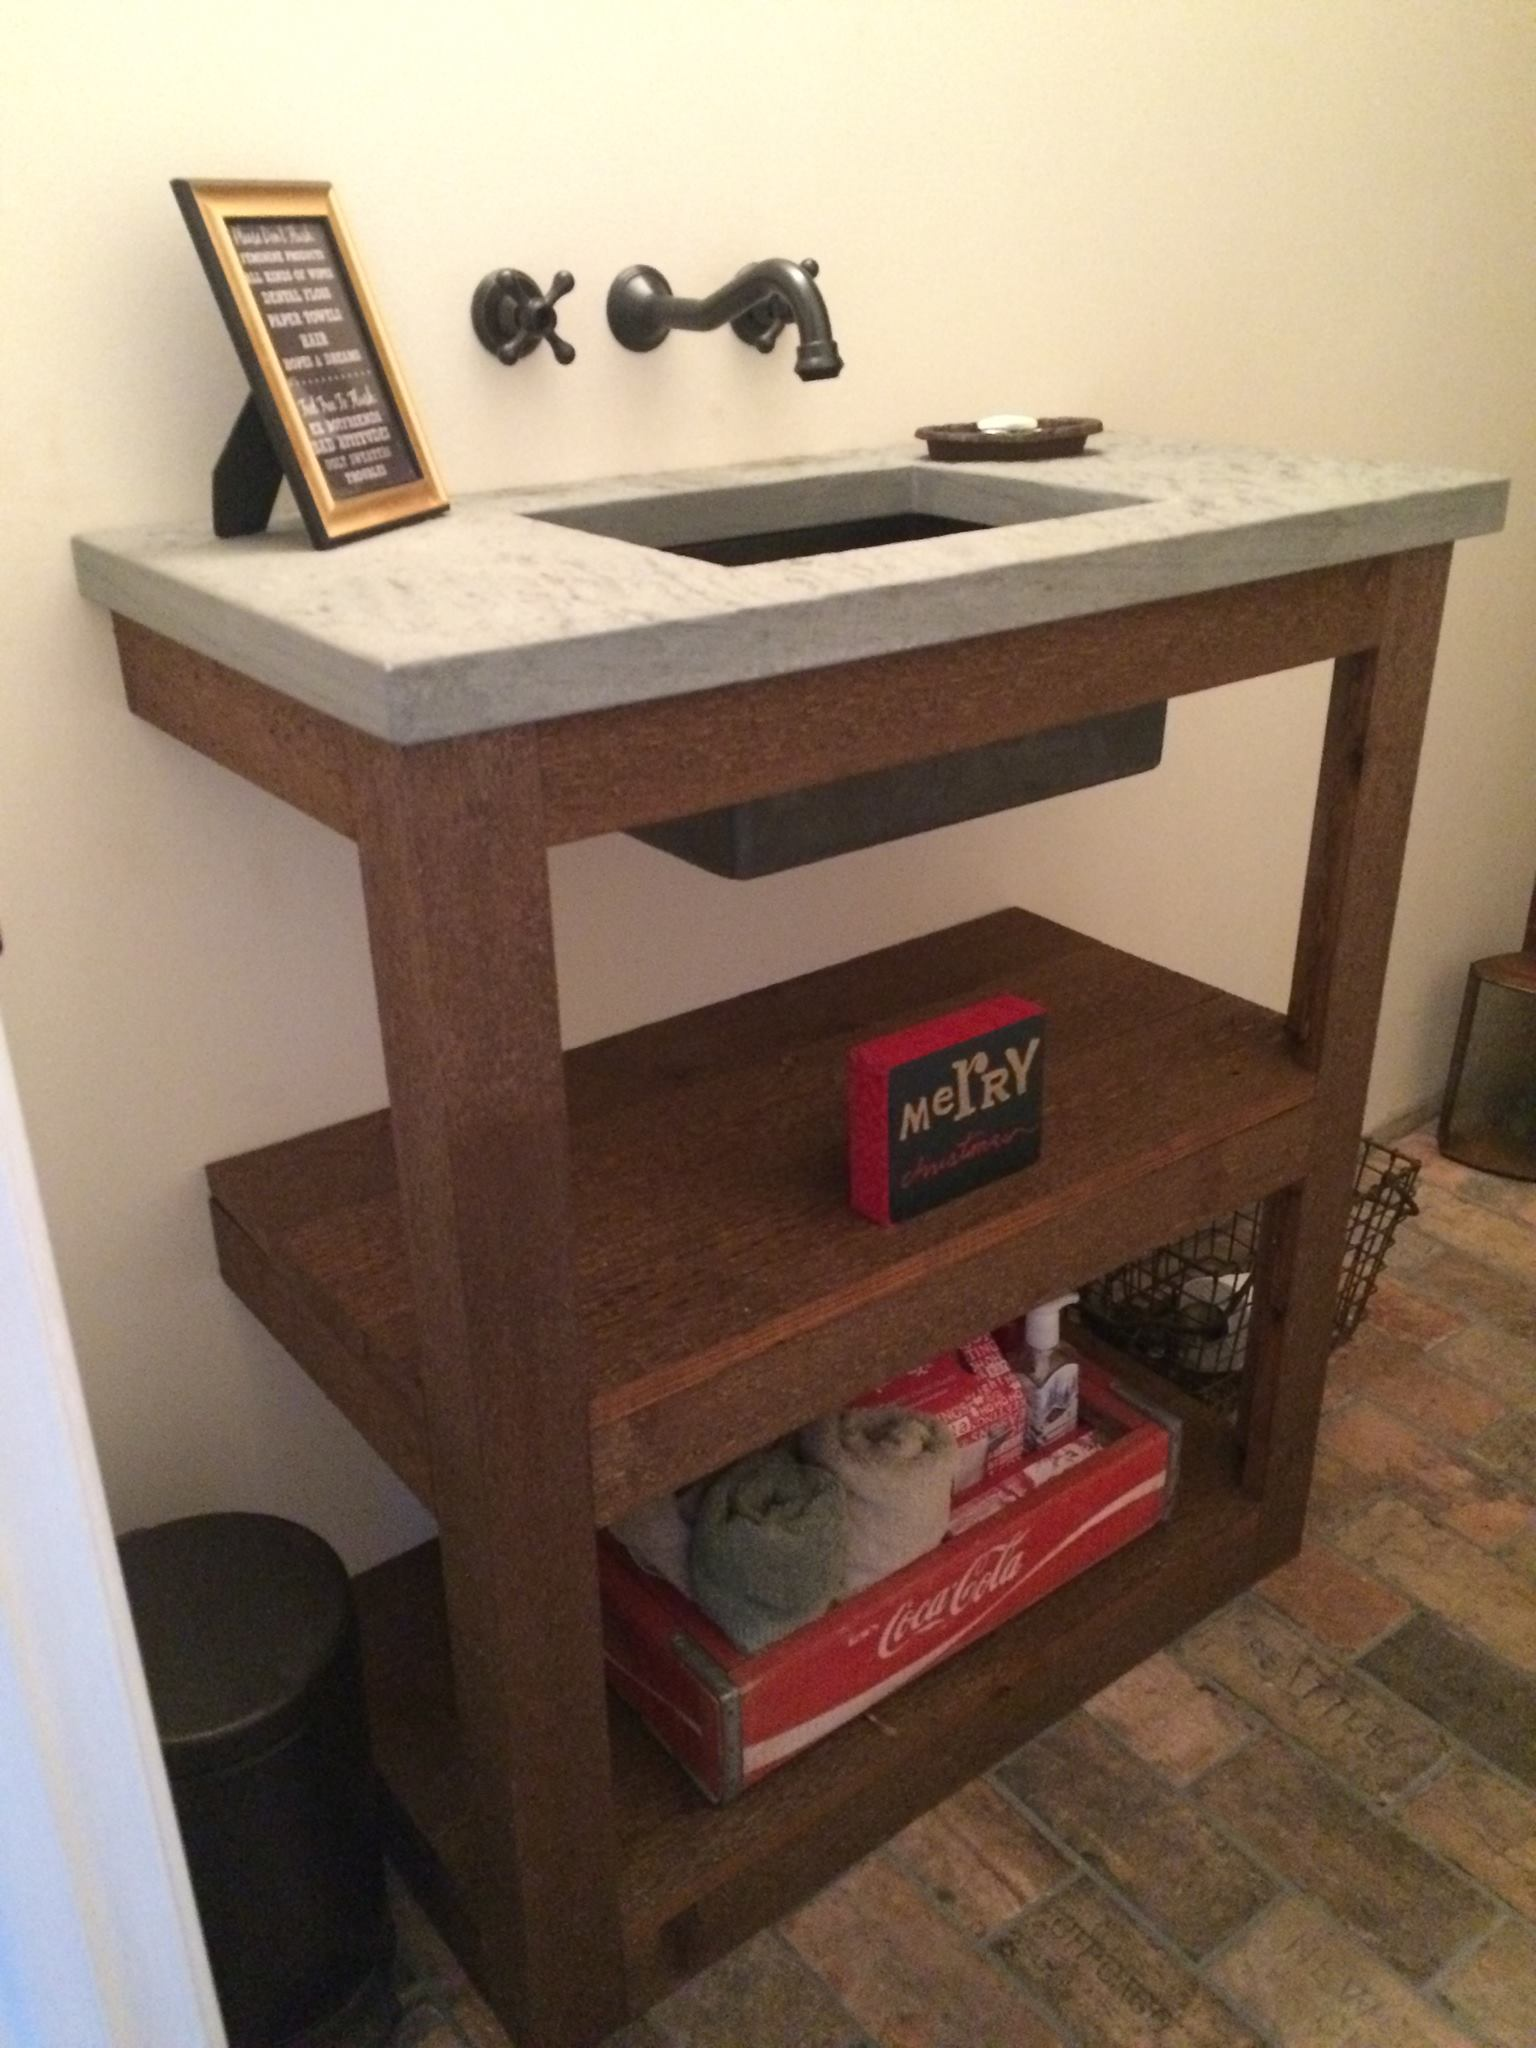 SHOUT OUT TO DREW for this beautiful custom built vanity to hold up the step countertop!!!!